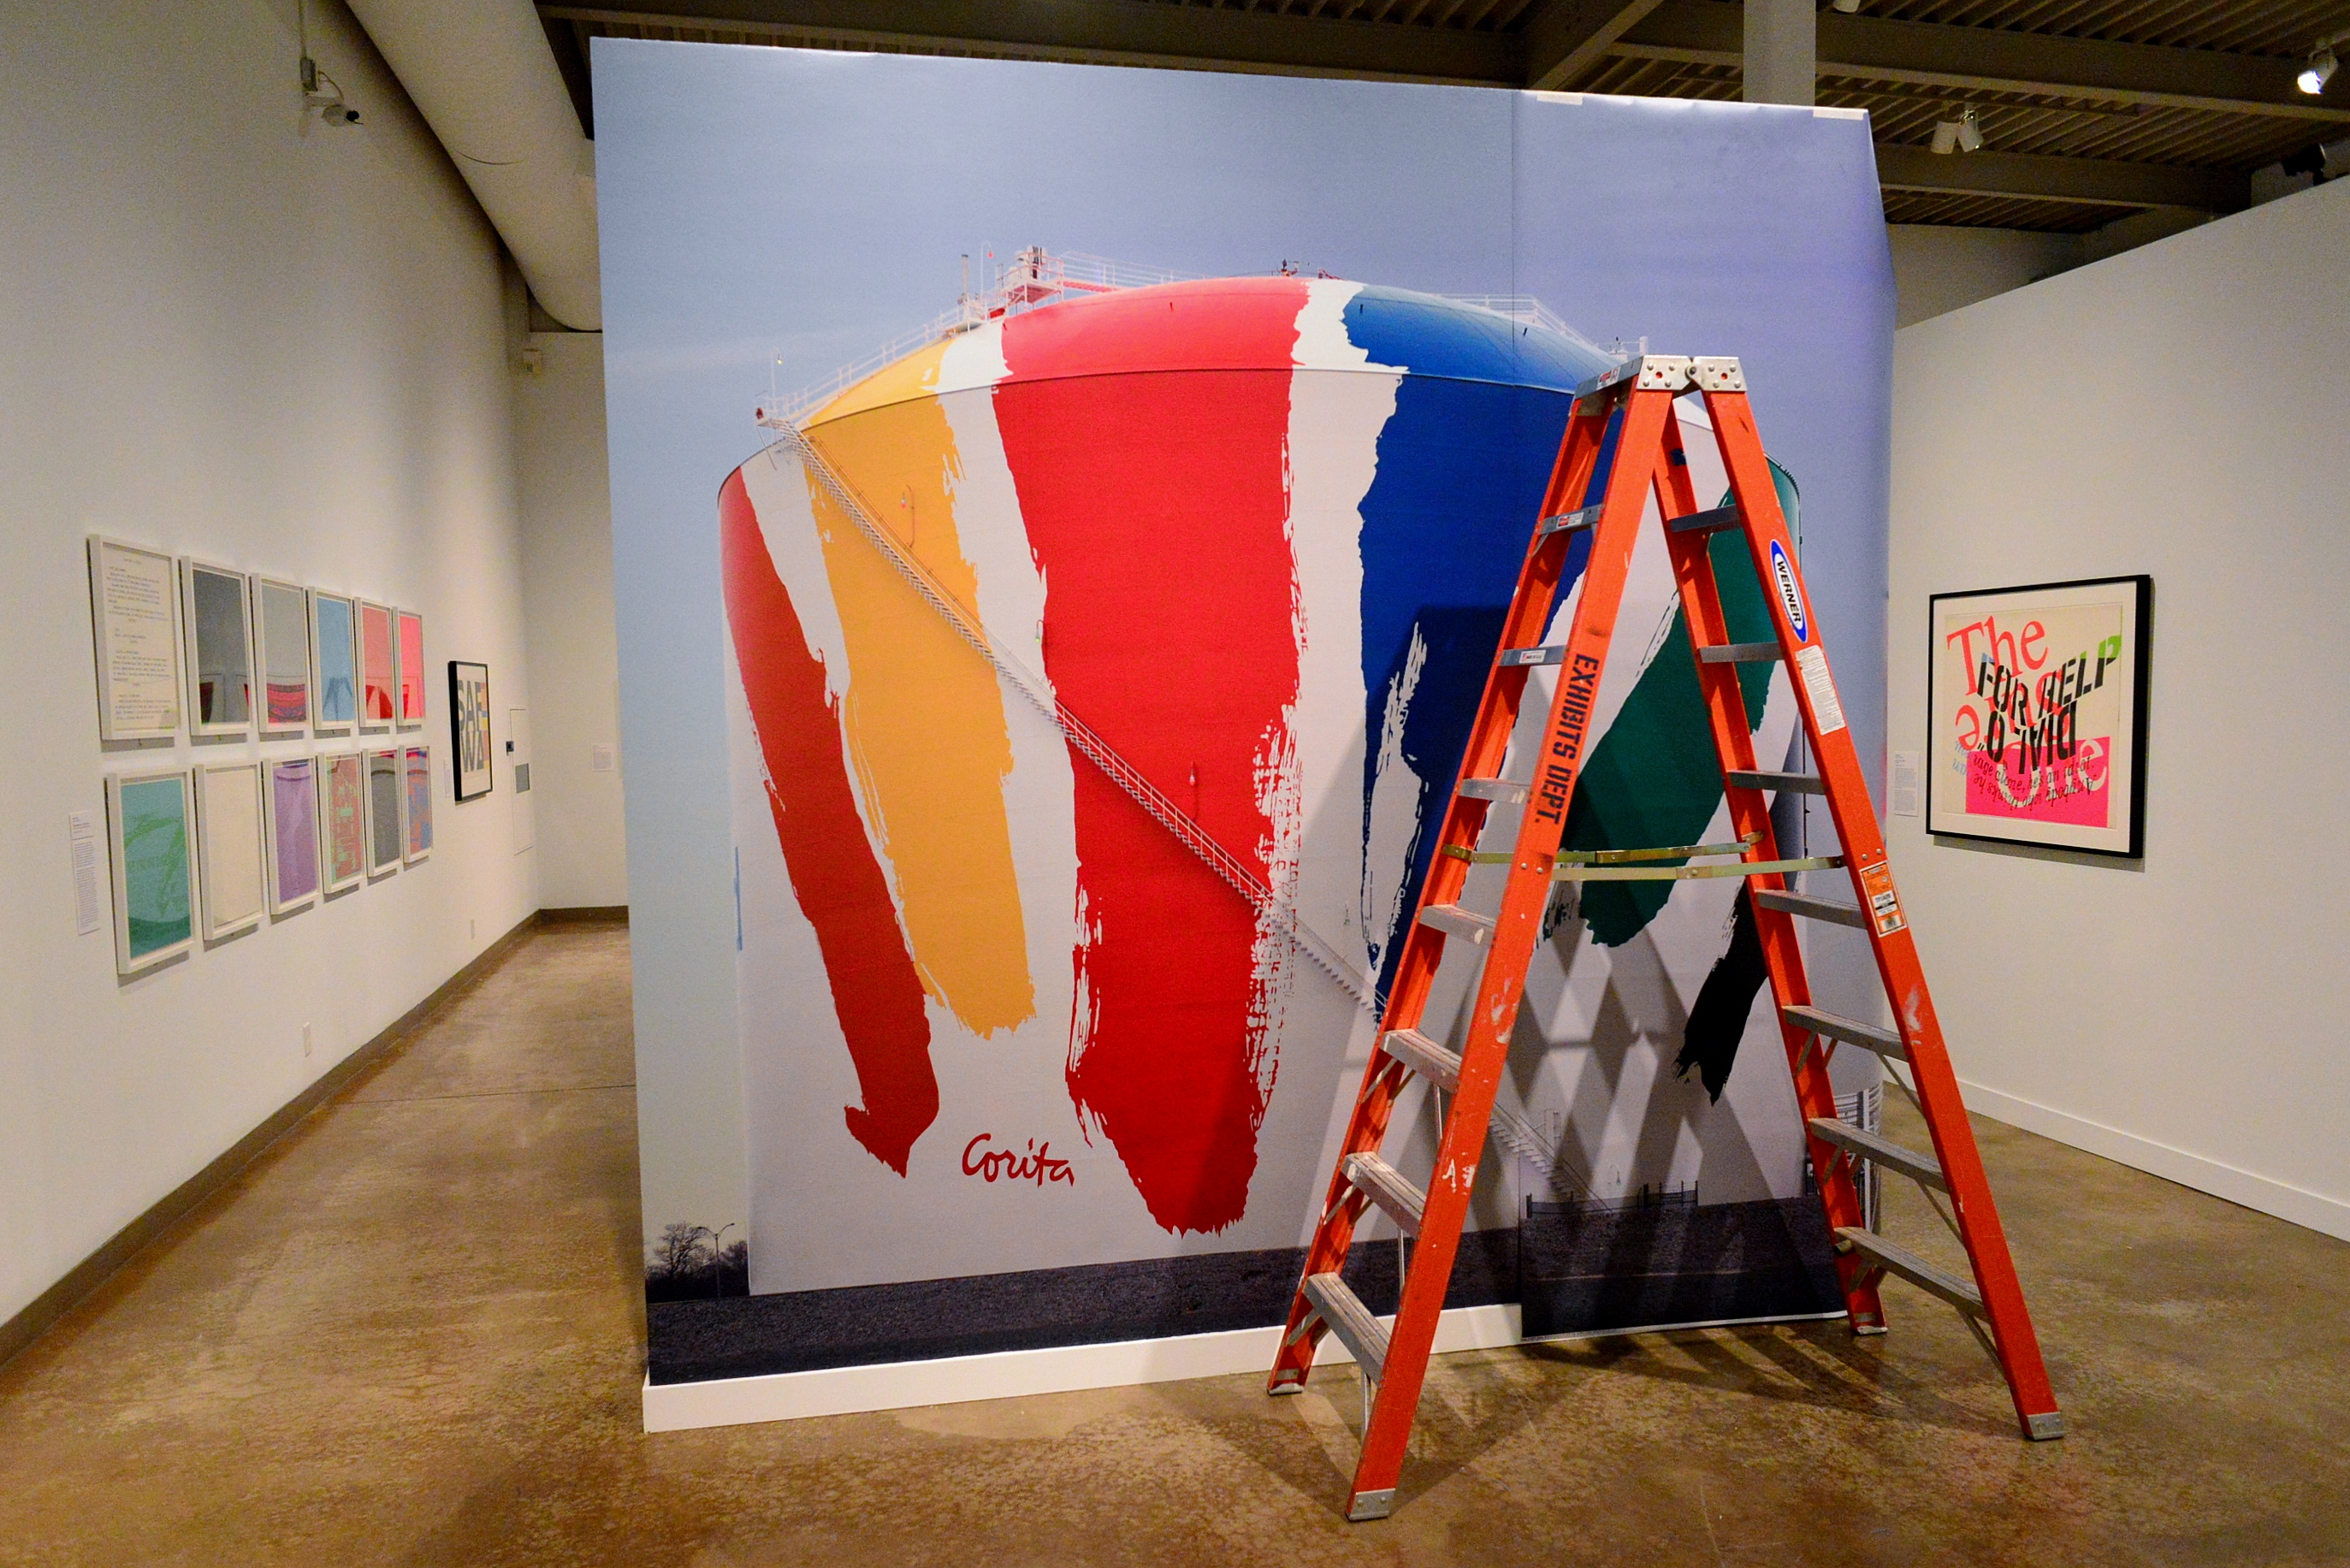 """Boston Gas Tank (Rainbow Tank) by Corita Kent. In 1971 this public artwork was met with controversy. However, when the receptacle was replaced in the early '90s the design was repainted due to """"overwhelming requests for its return."""""""